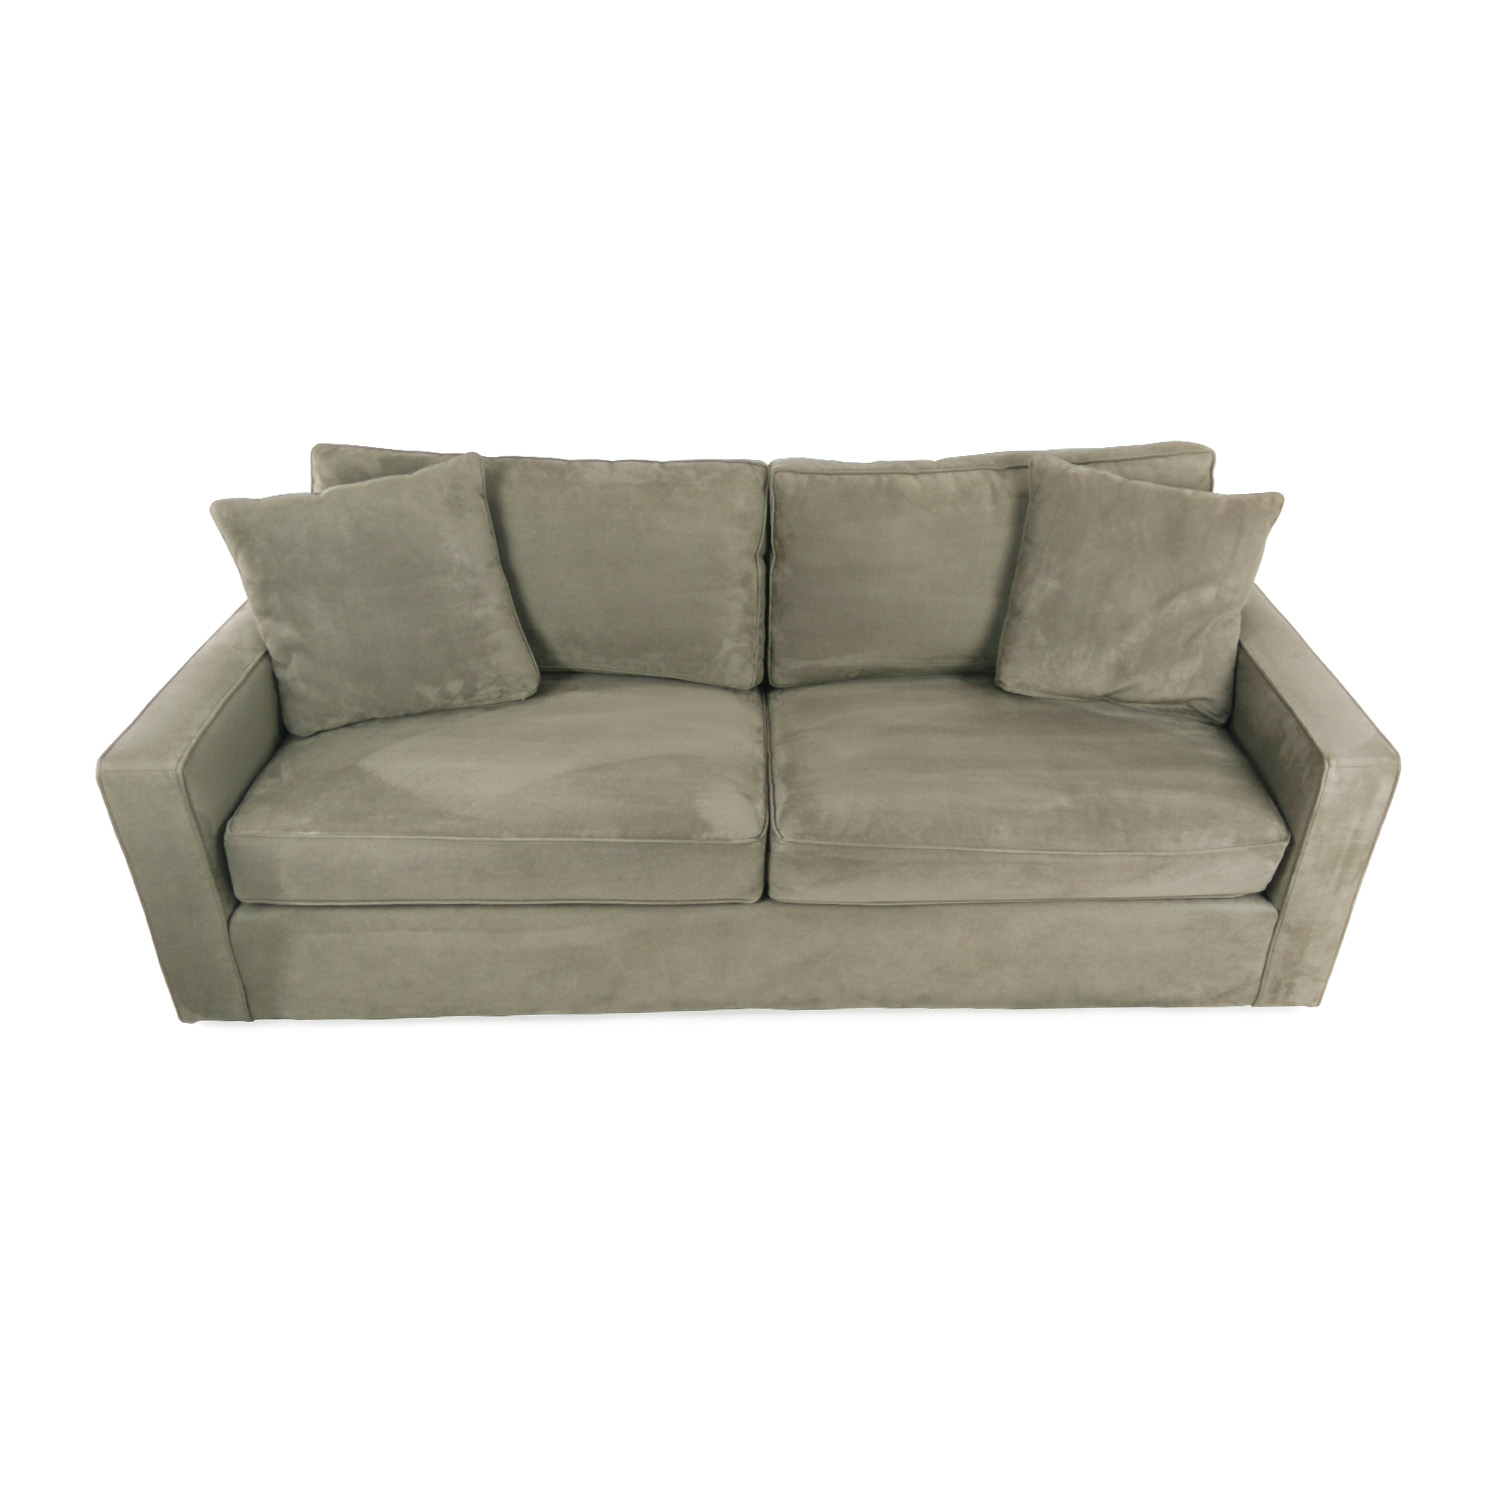 ... Room And Board Room U0026 Board York Sofa For ...